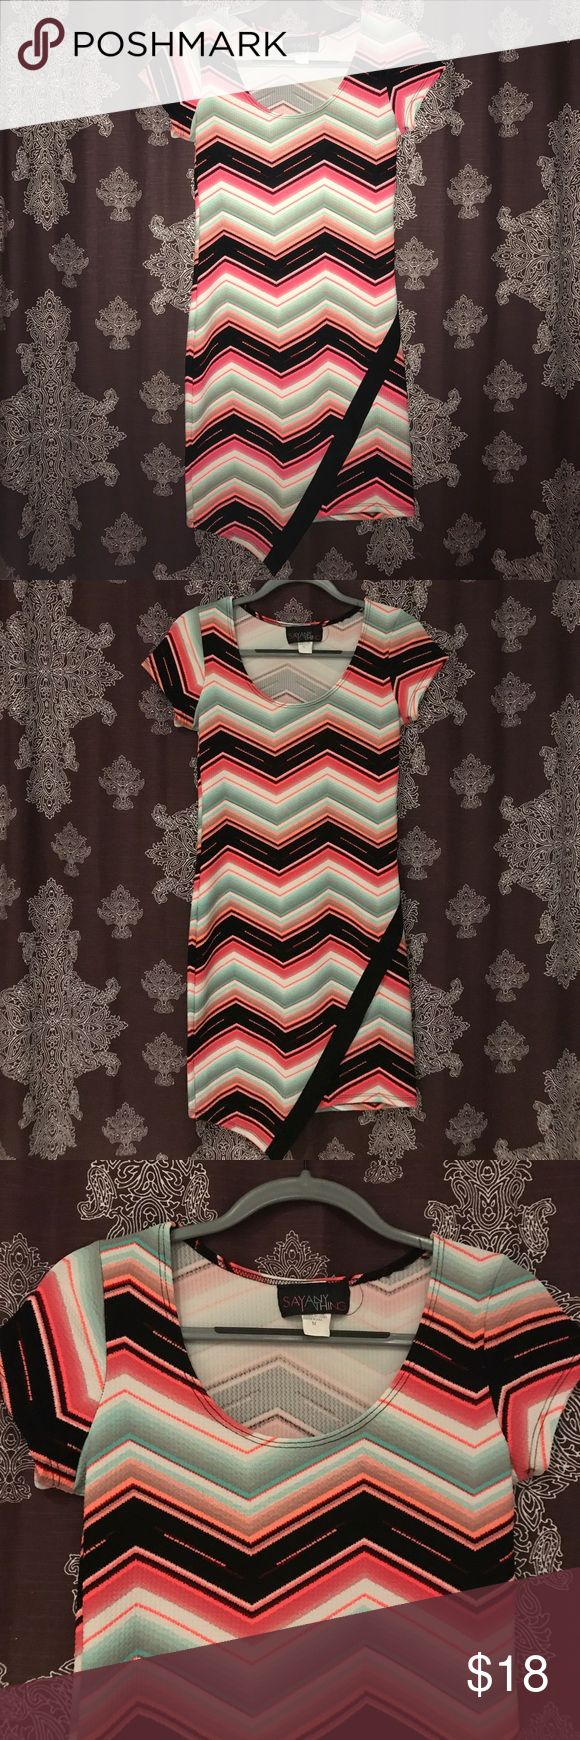 Asymmetrical Neon Striped Chevron Dress size M Super cute for going out, the club, or a party! Excellent condition. Neon and Pastel Chevron striped pattern and asymmetrical hem. Size medium. Say Anything Dresses Asymmetrical